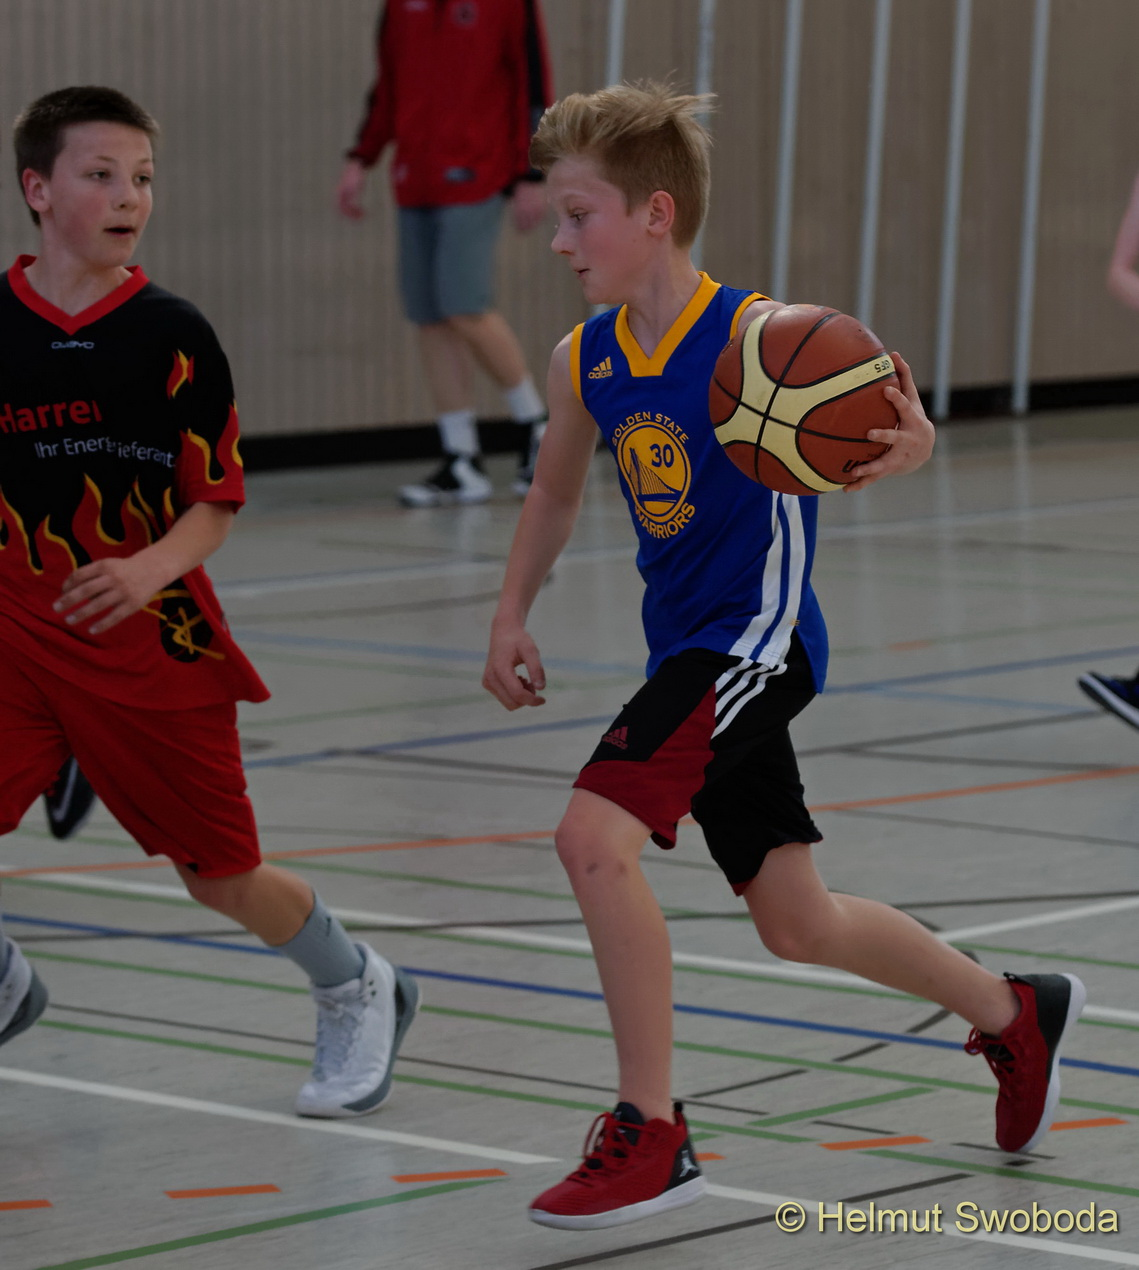 d170402-155839900-100-basketball_weilheim-mixed-turnier_33813699105_o